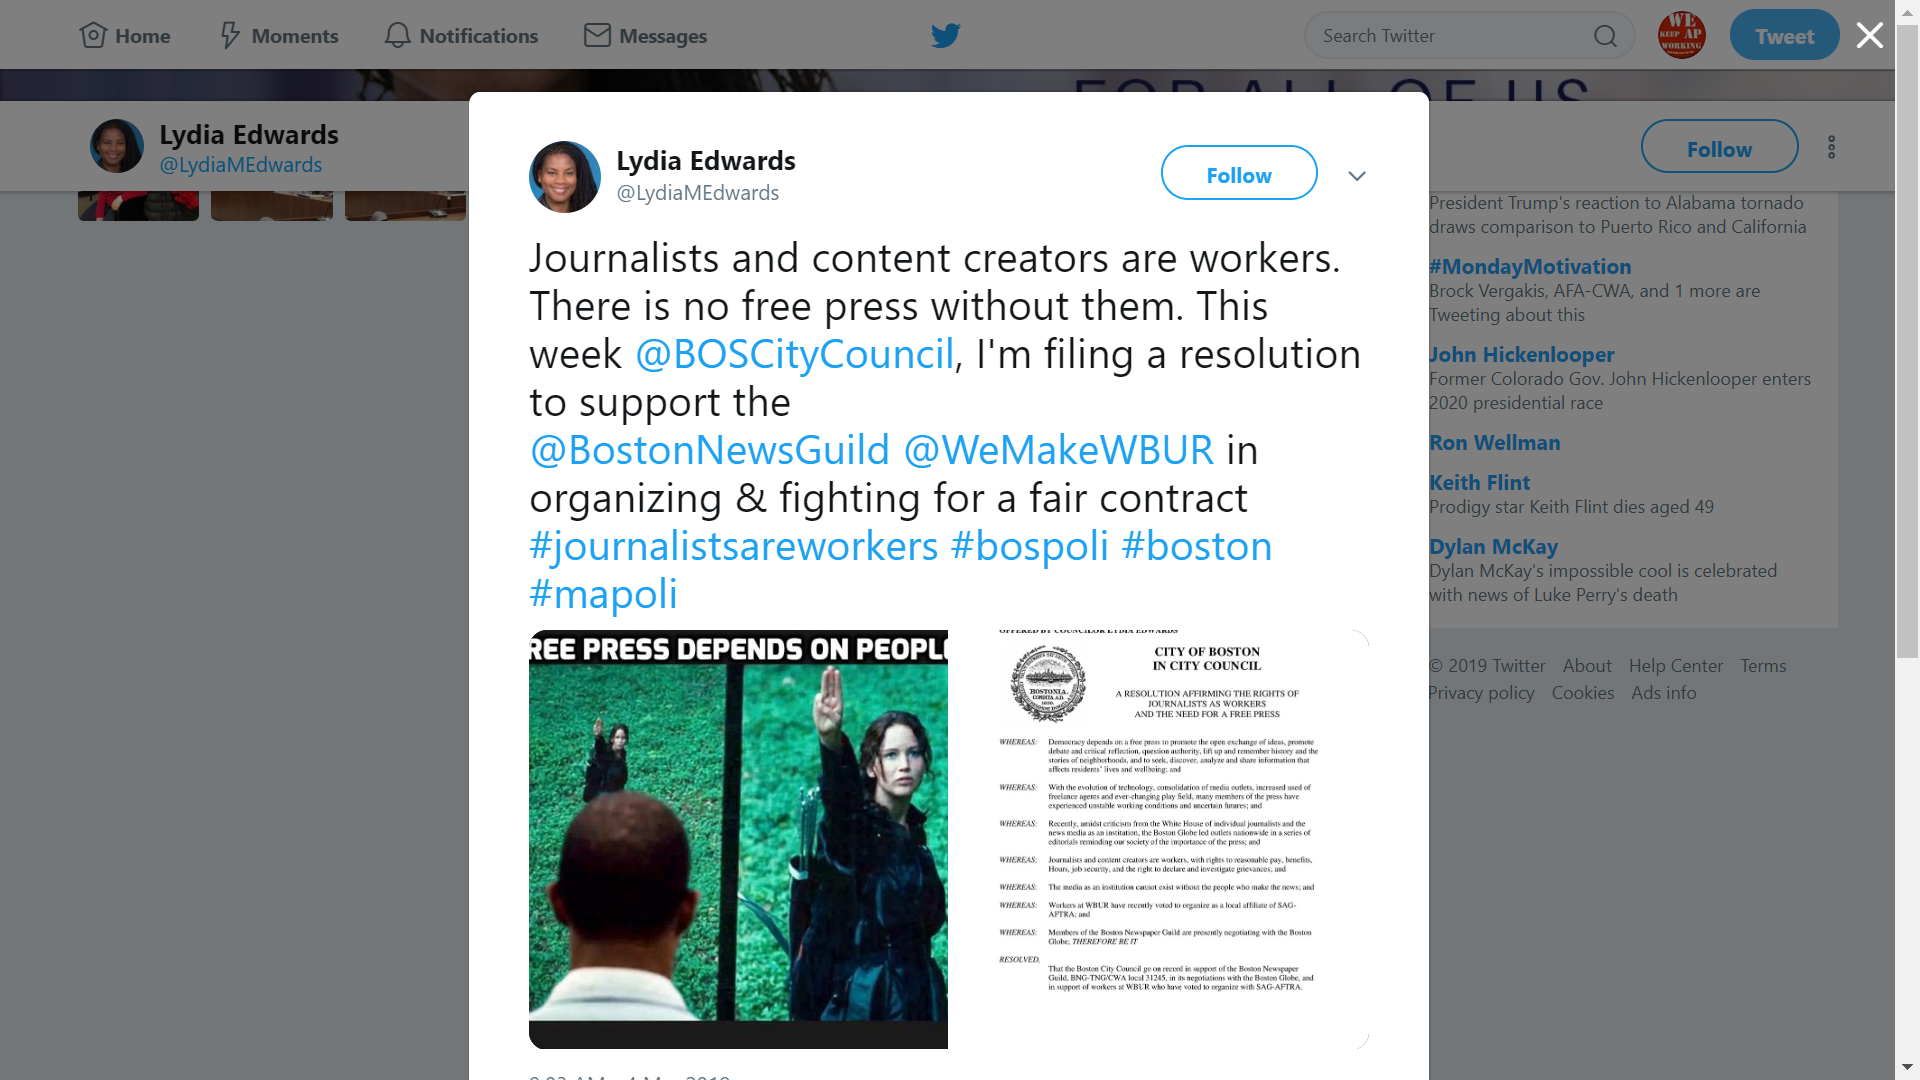 Boston City Council member tweets in support of Boston Newspaper Guild.